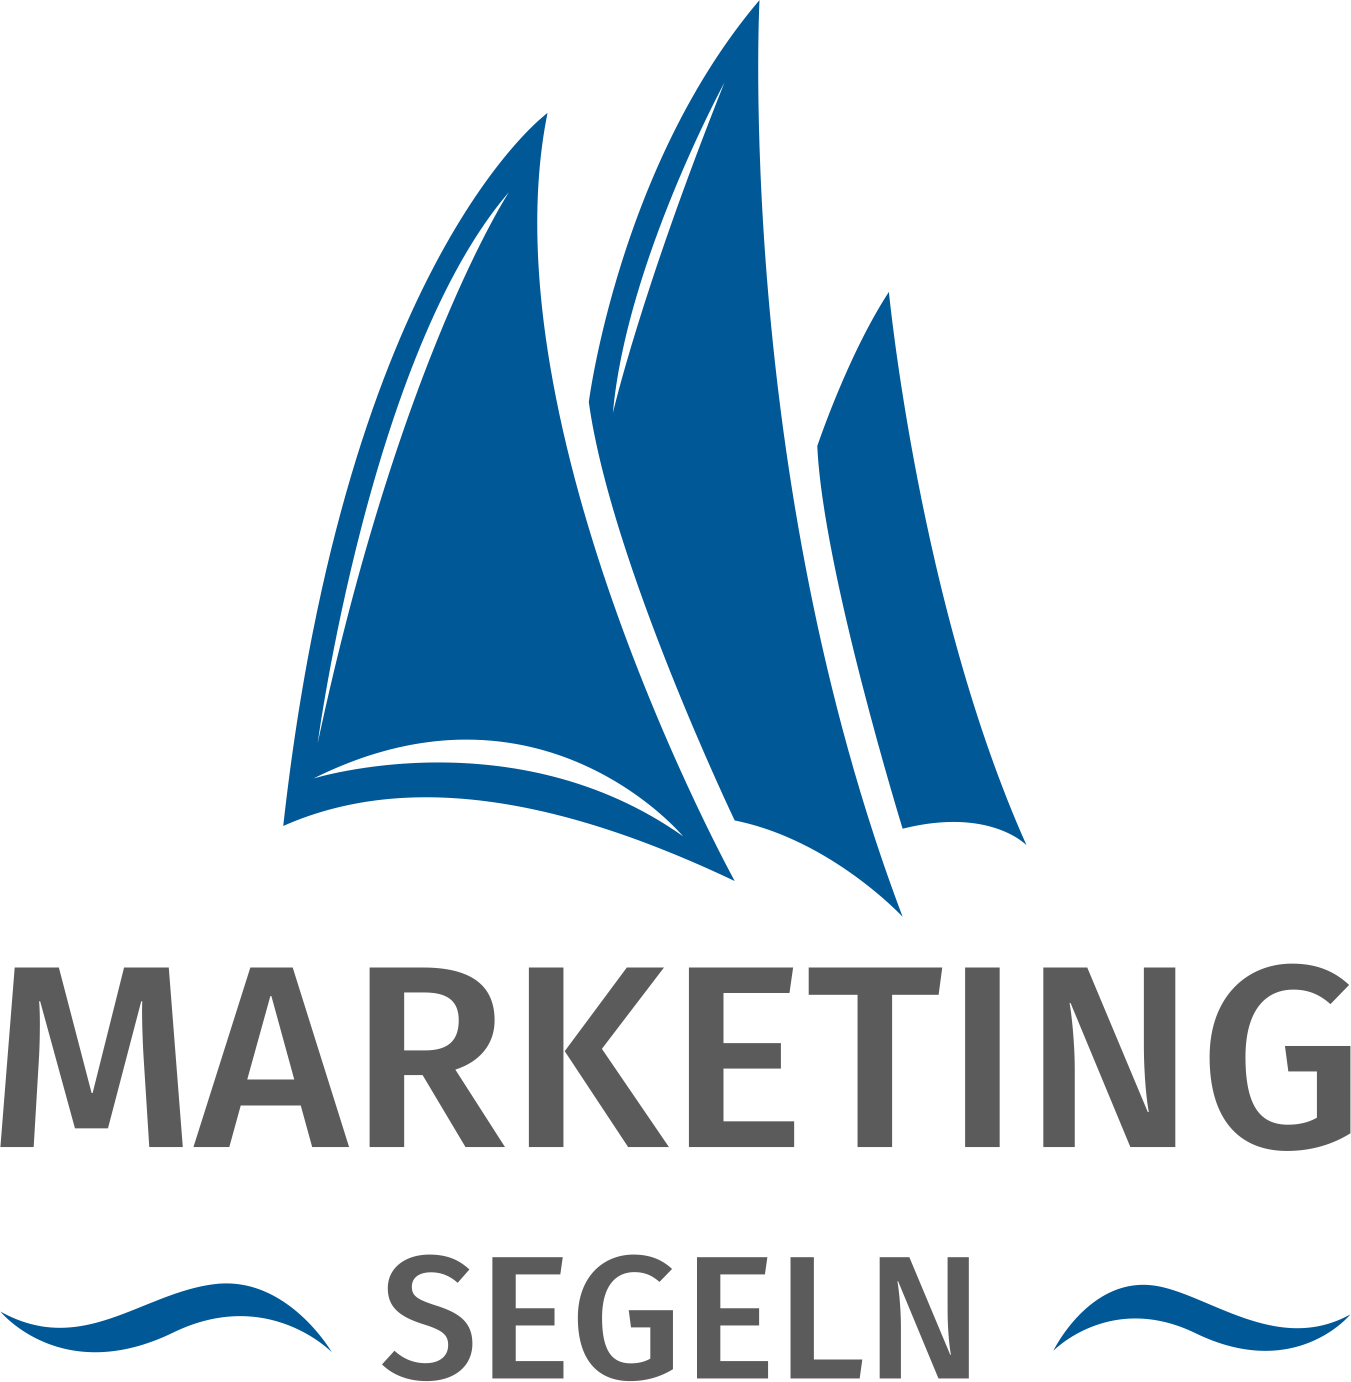 MarketingSegeln